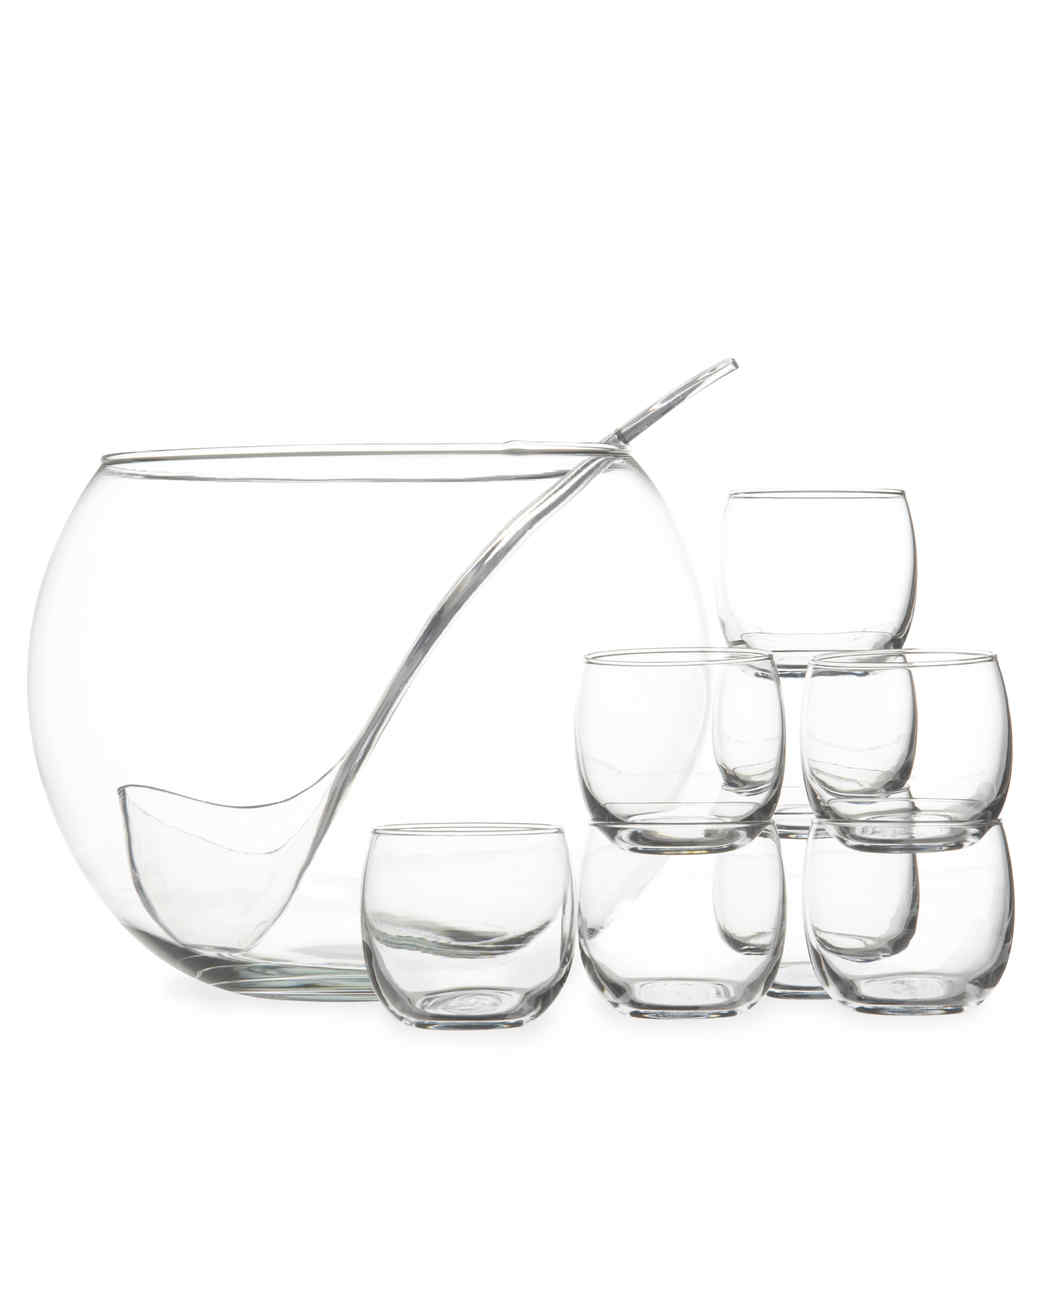 punch-bowl-glasses-ms108431.jpg